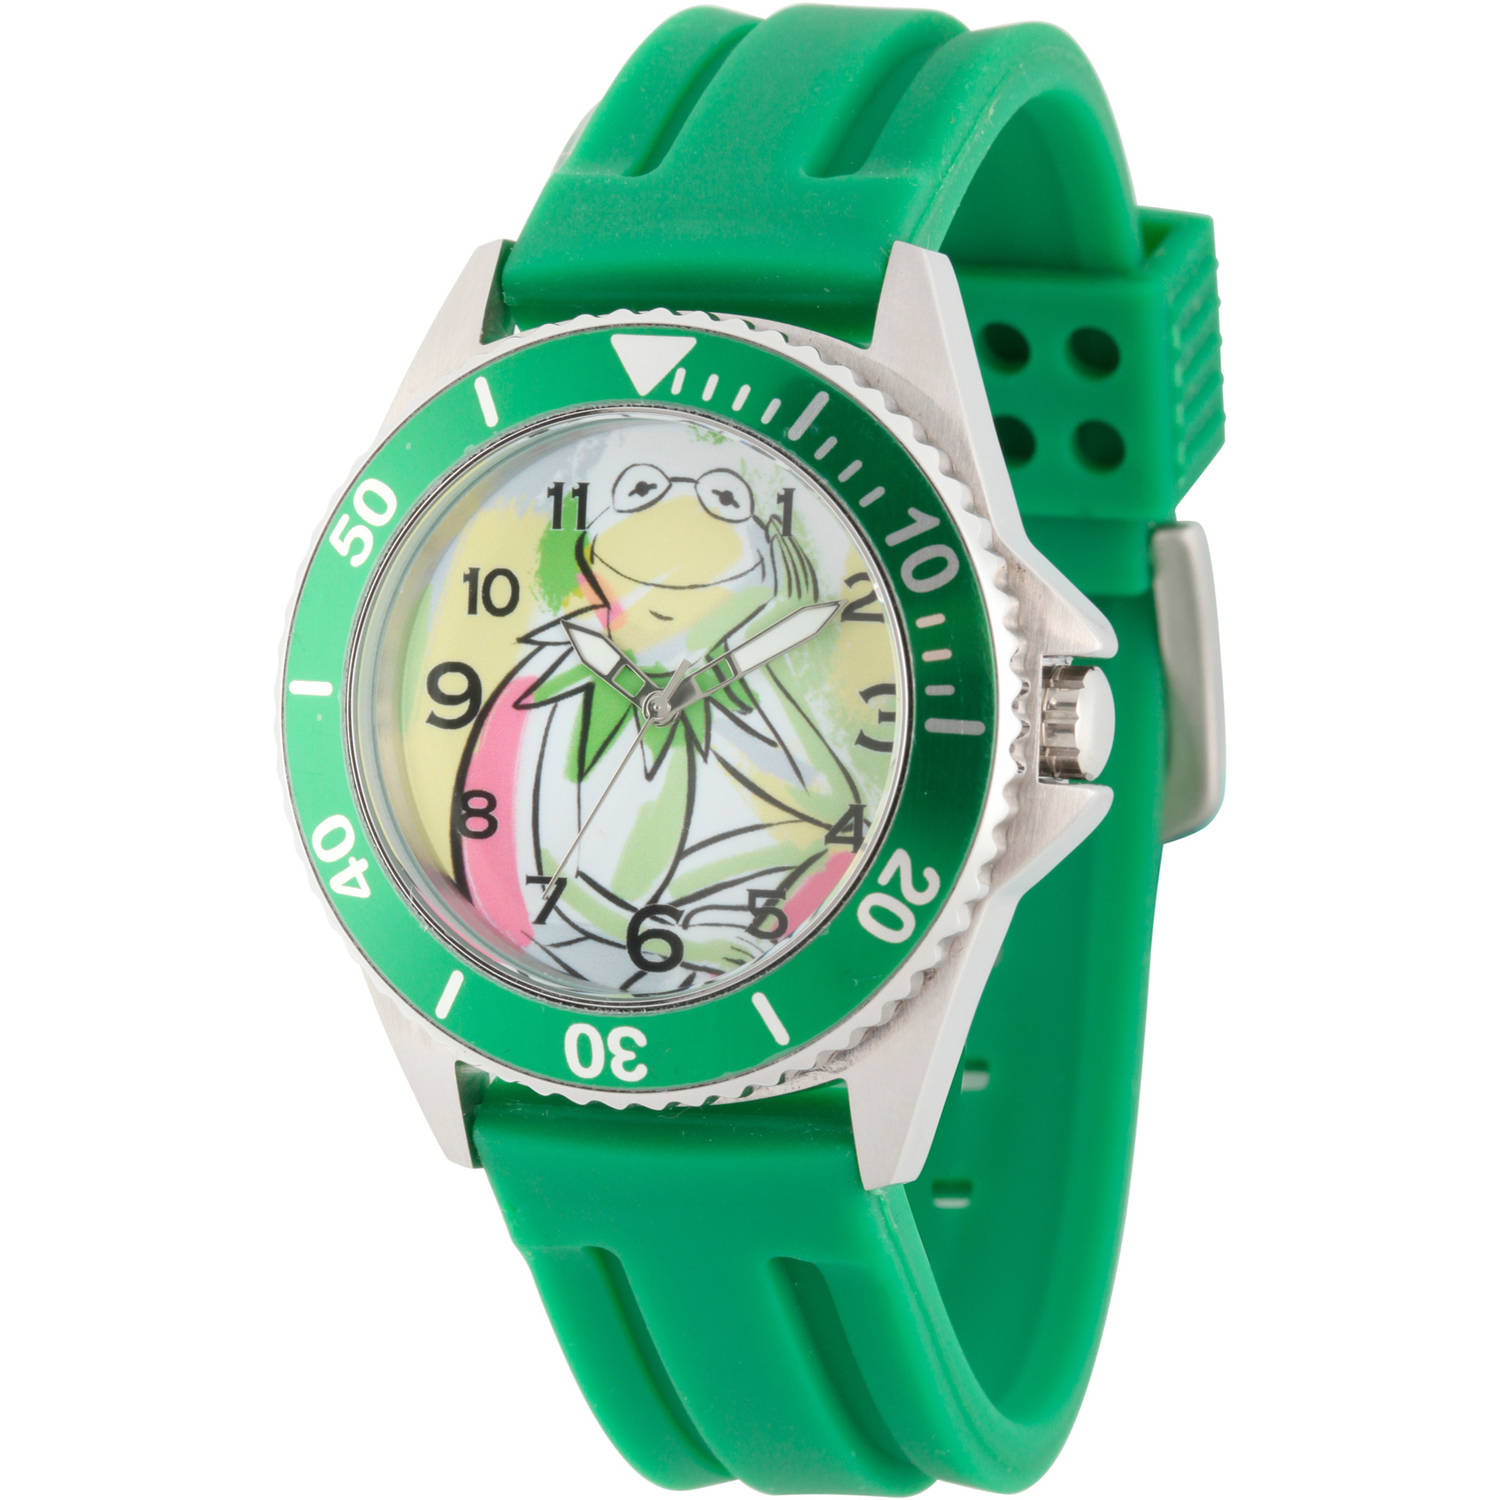 Disney The Muppets Kermit the Frog Men's Silver Honors Stainless Steel Watch, Green Bezel, Green Rubber Strap